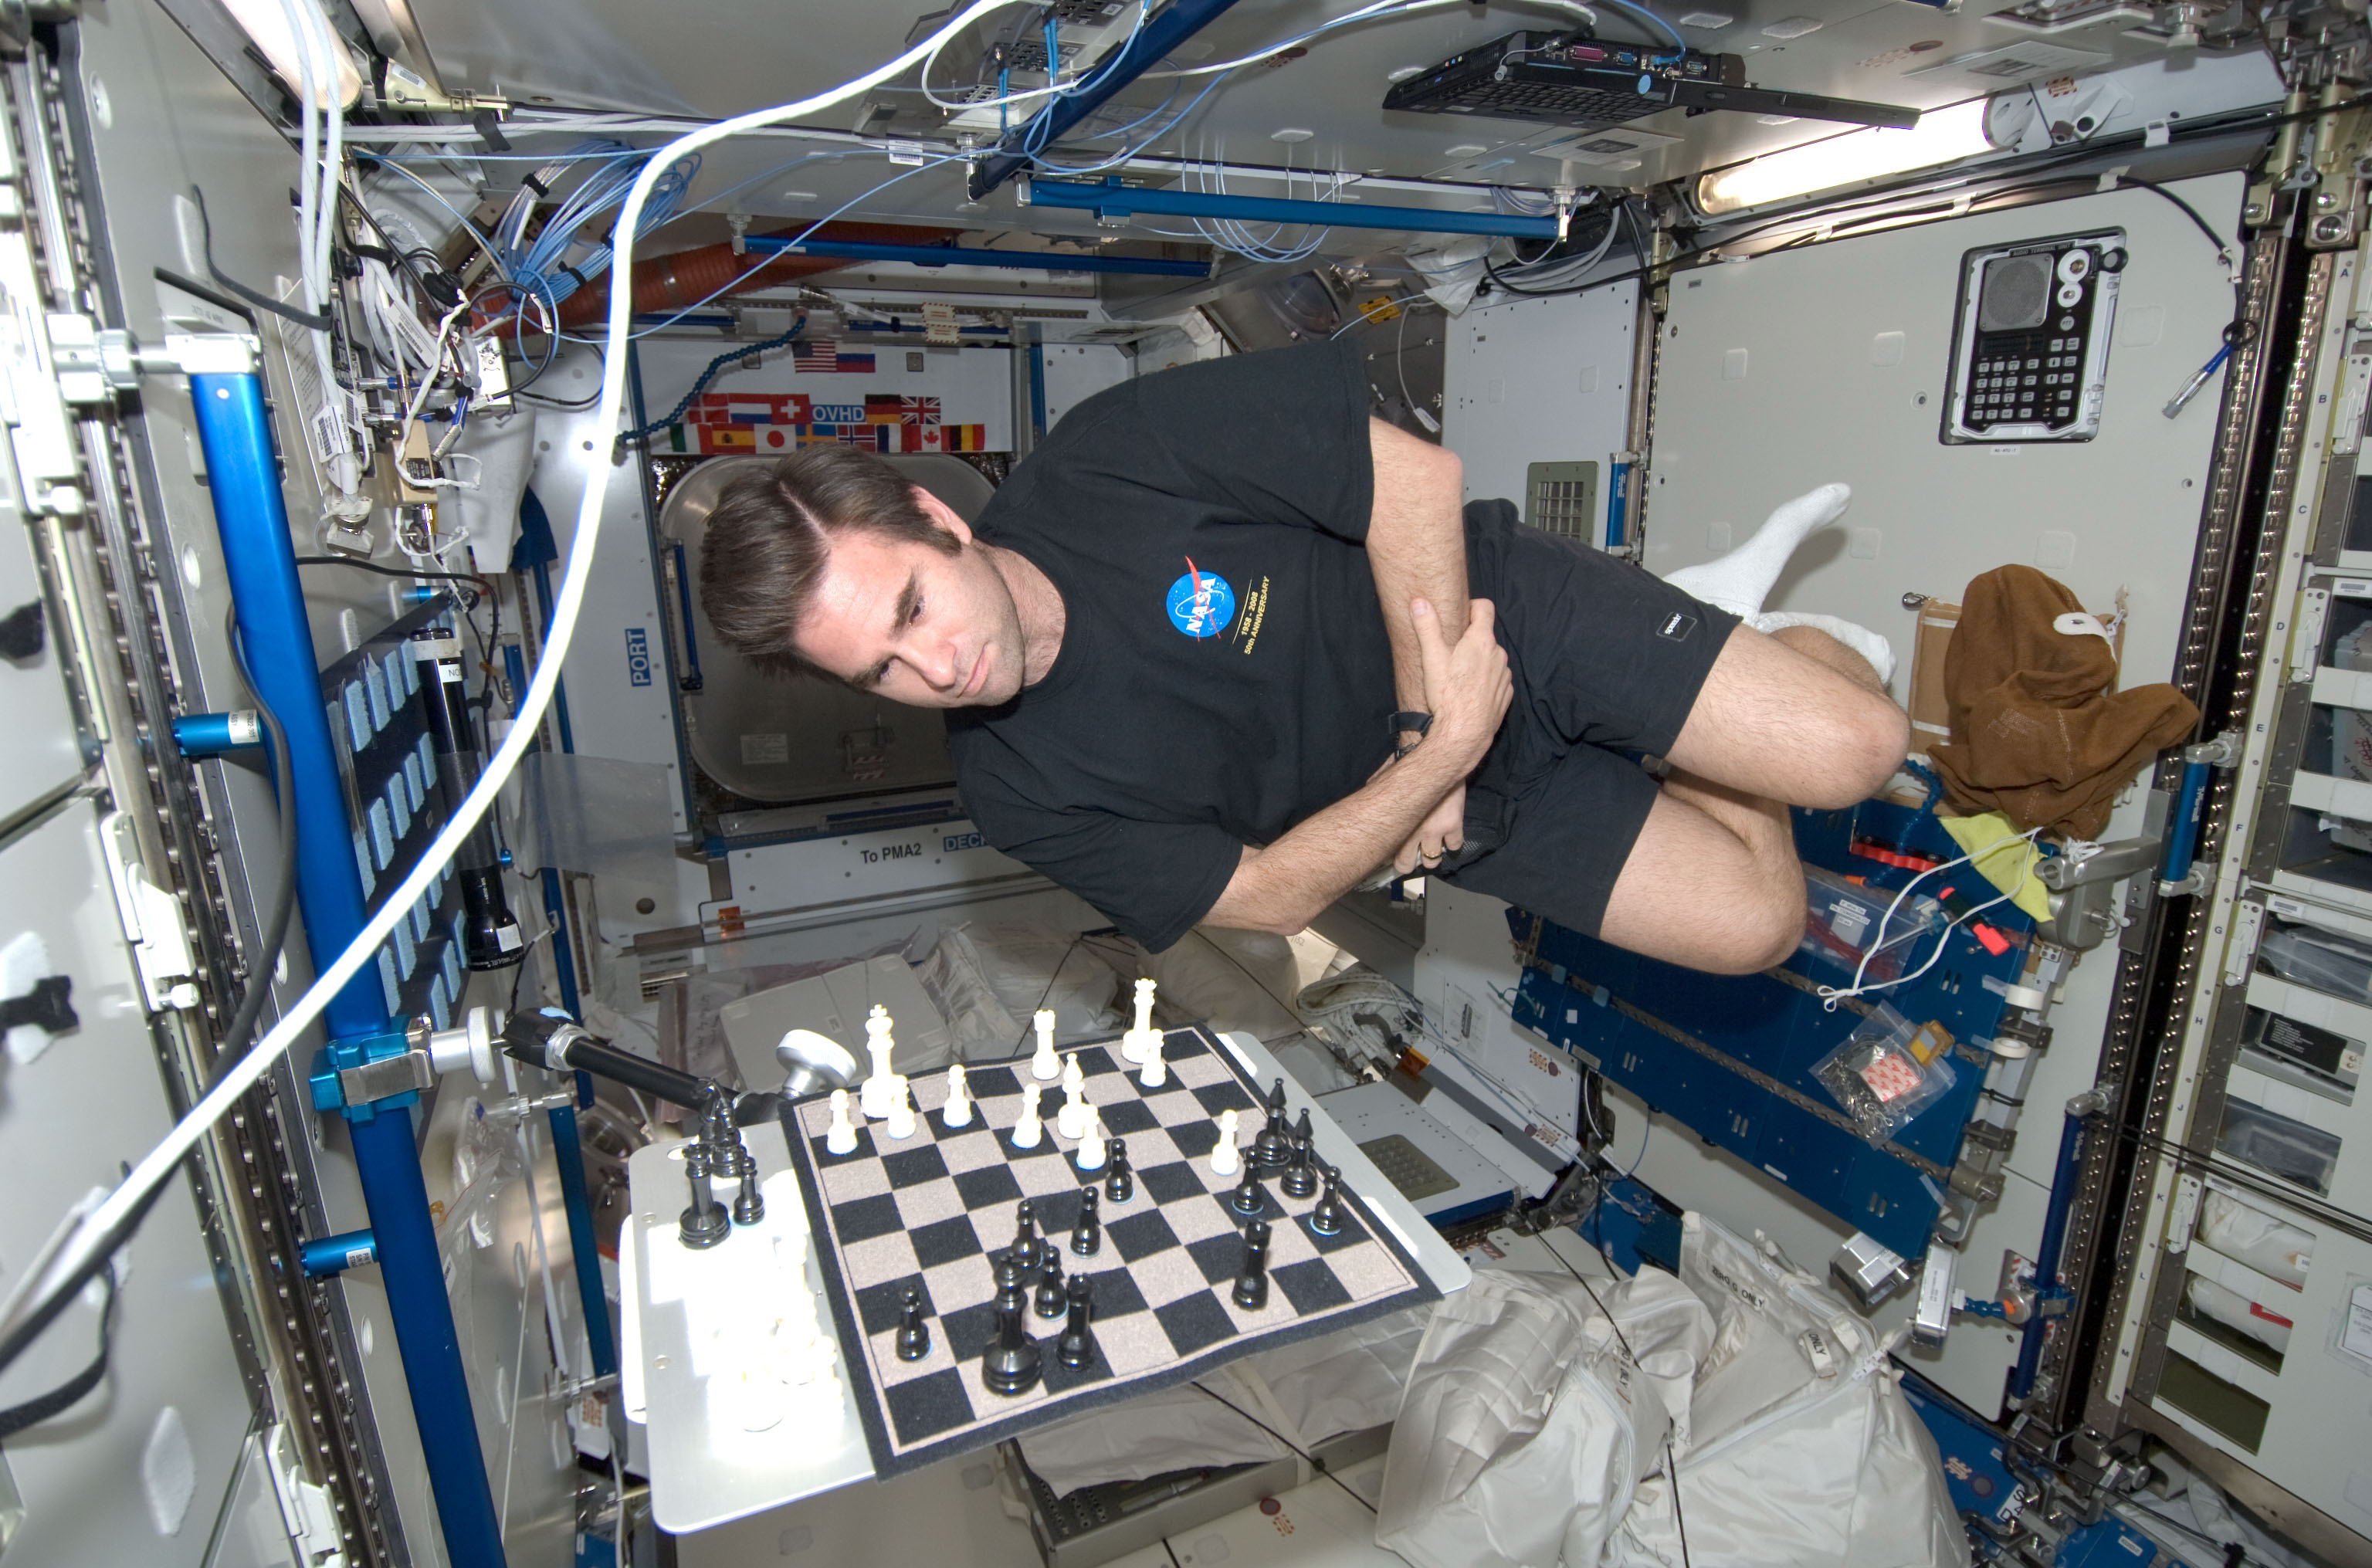 life of astronaut in space station - photo #42